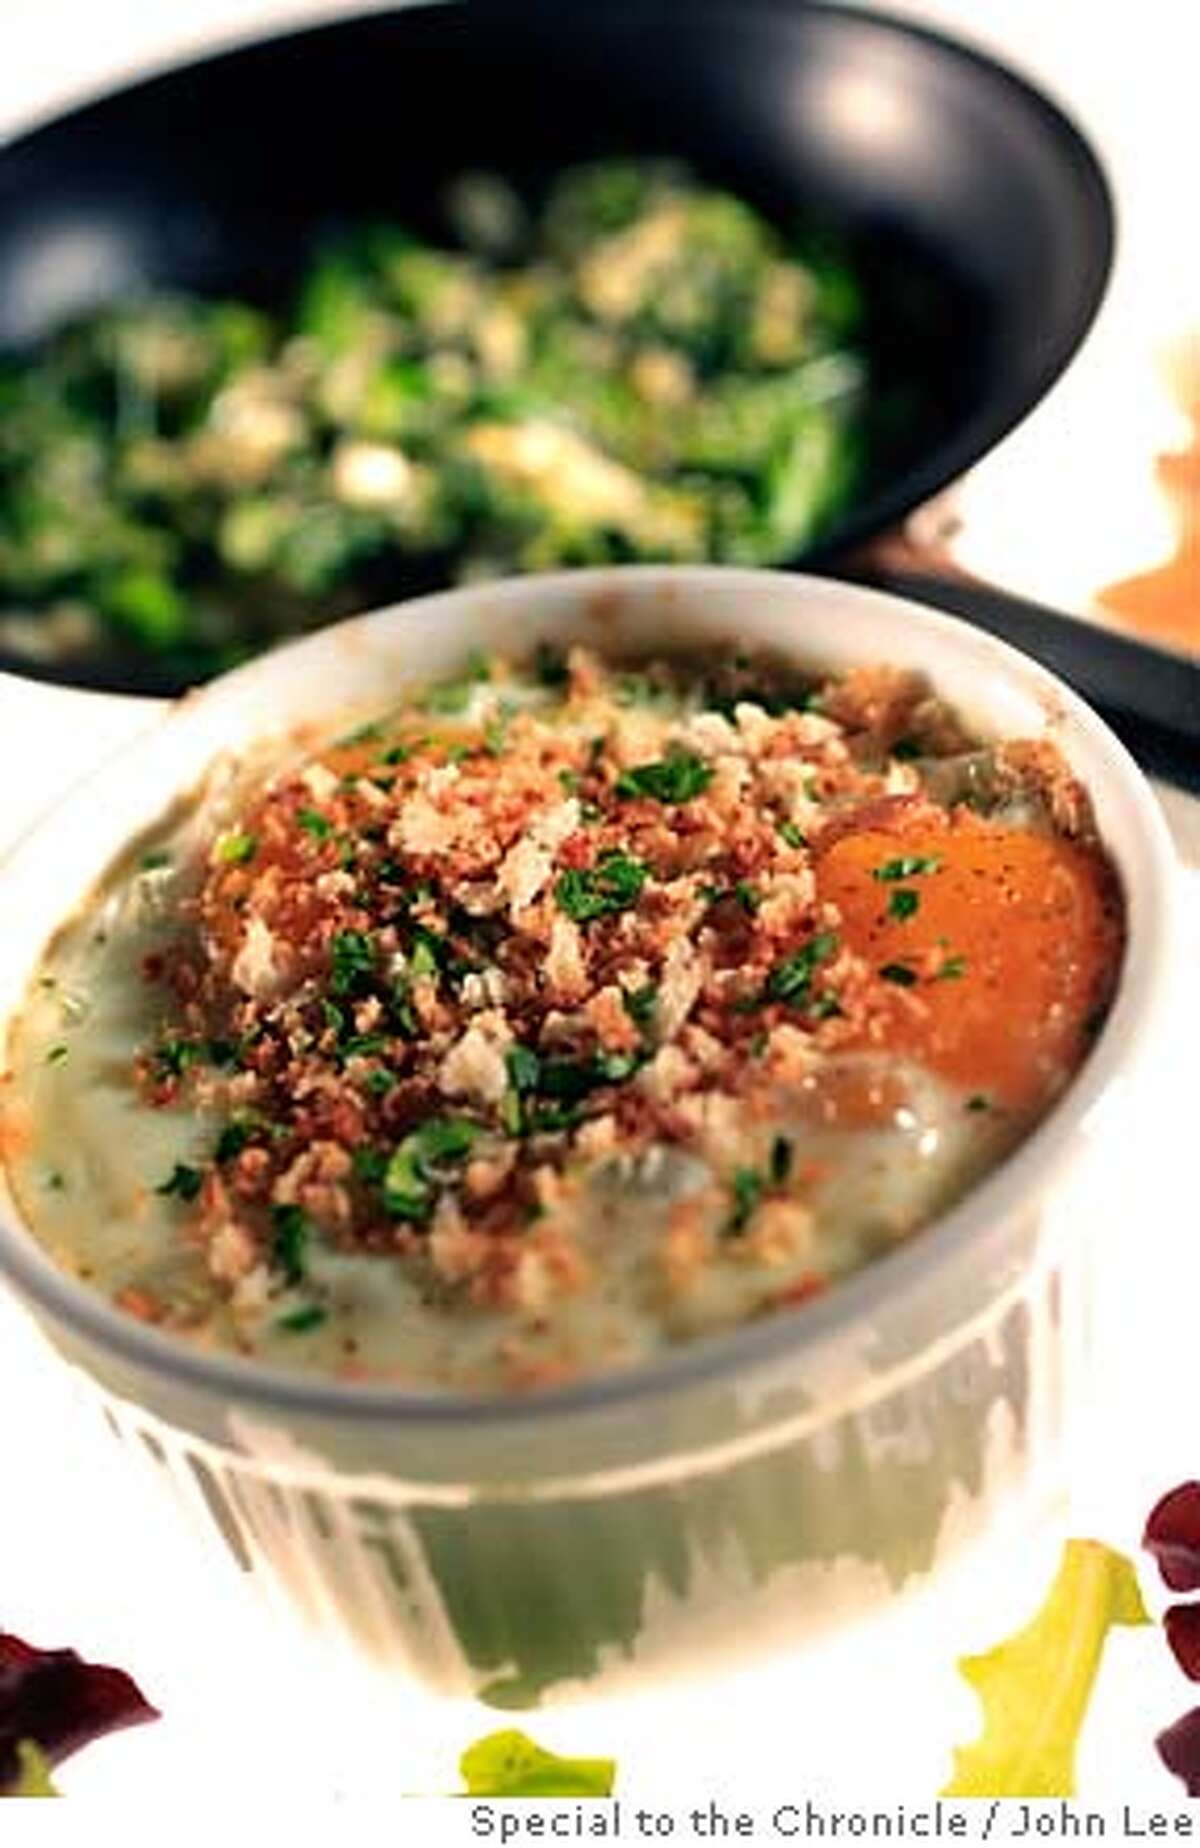 VEG21_SHIRRED_EGGS_02JOHNLEE.JPG Shirred Eggs with Greens and Gruyere. By JOHN LEE/SPECIAL TO THE CHRONICLE